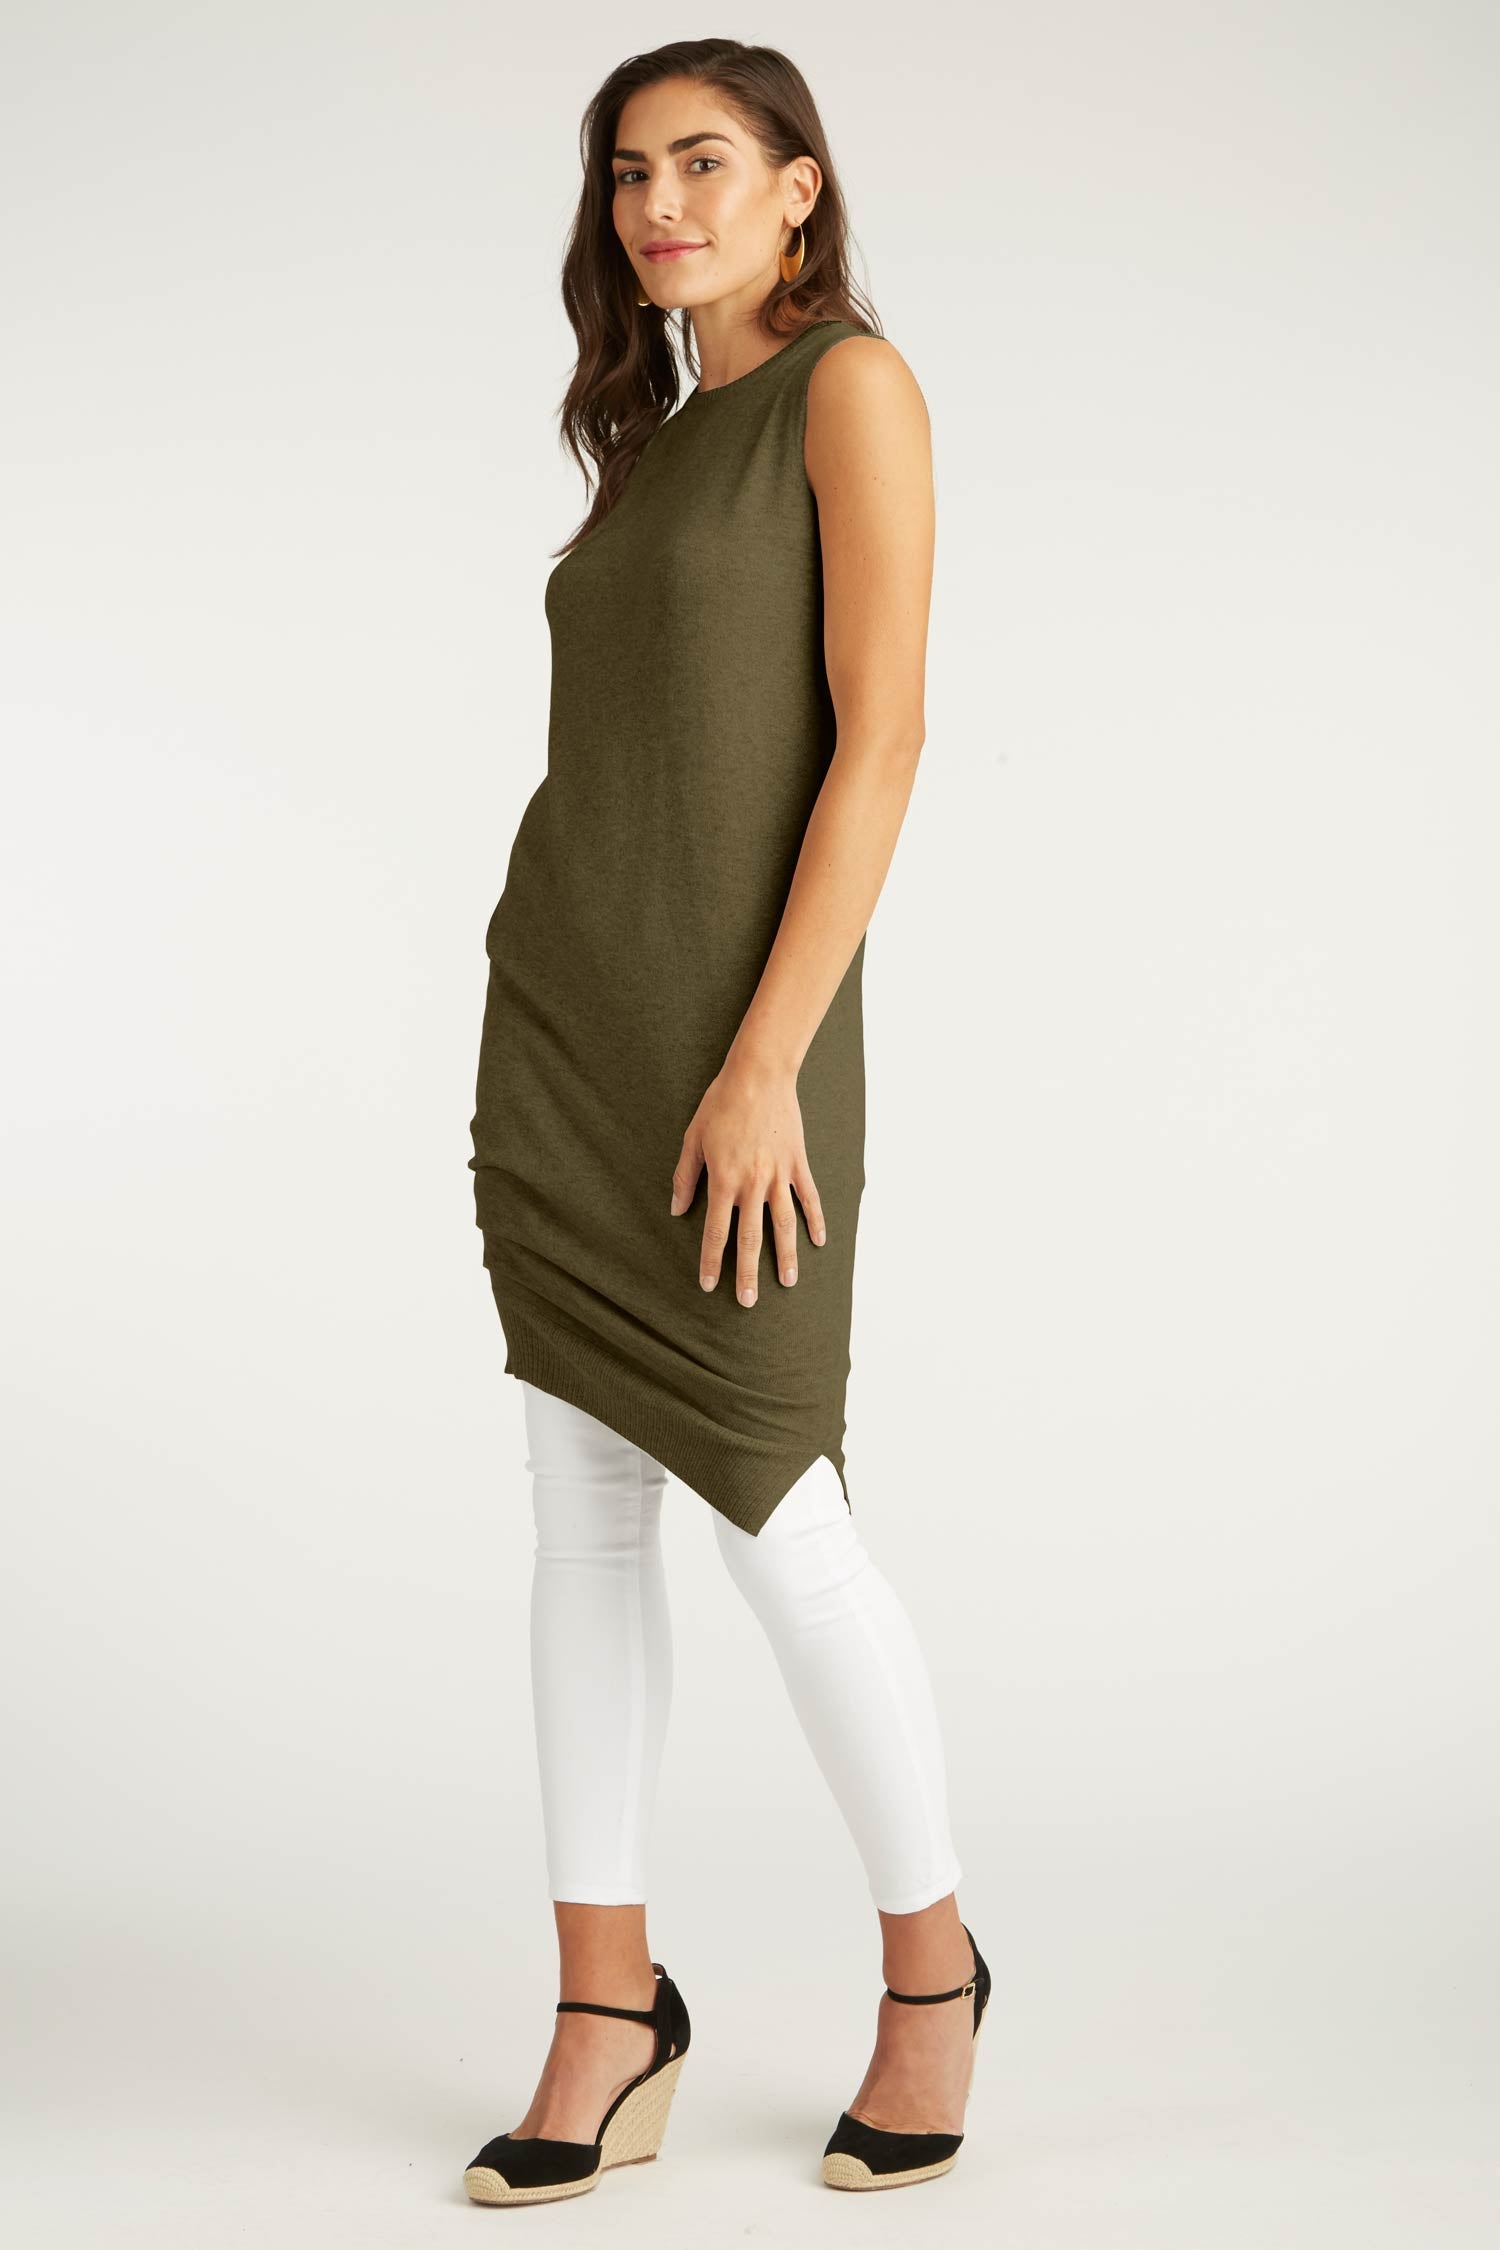 Womens Organic Cotton Dress | Green Knit Draped Dress | Indigenous